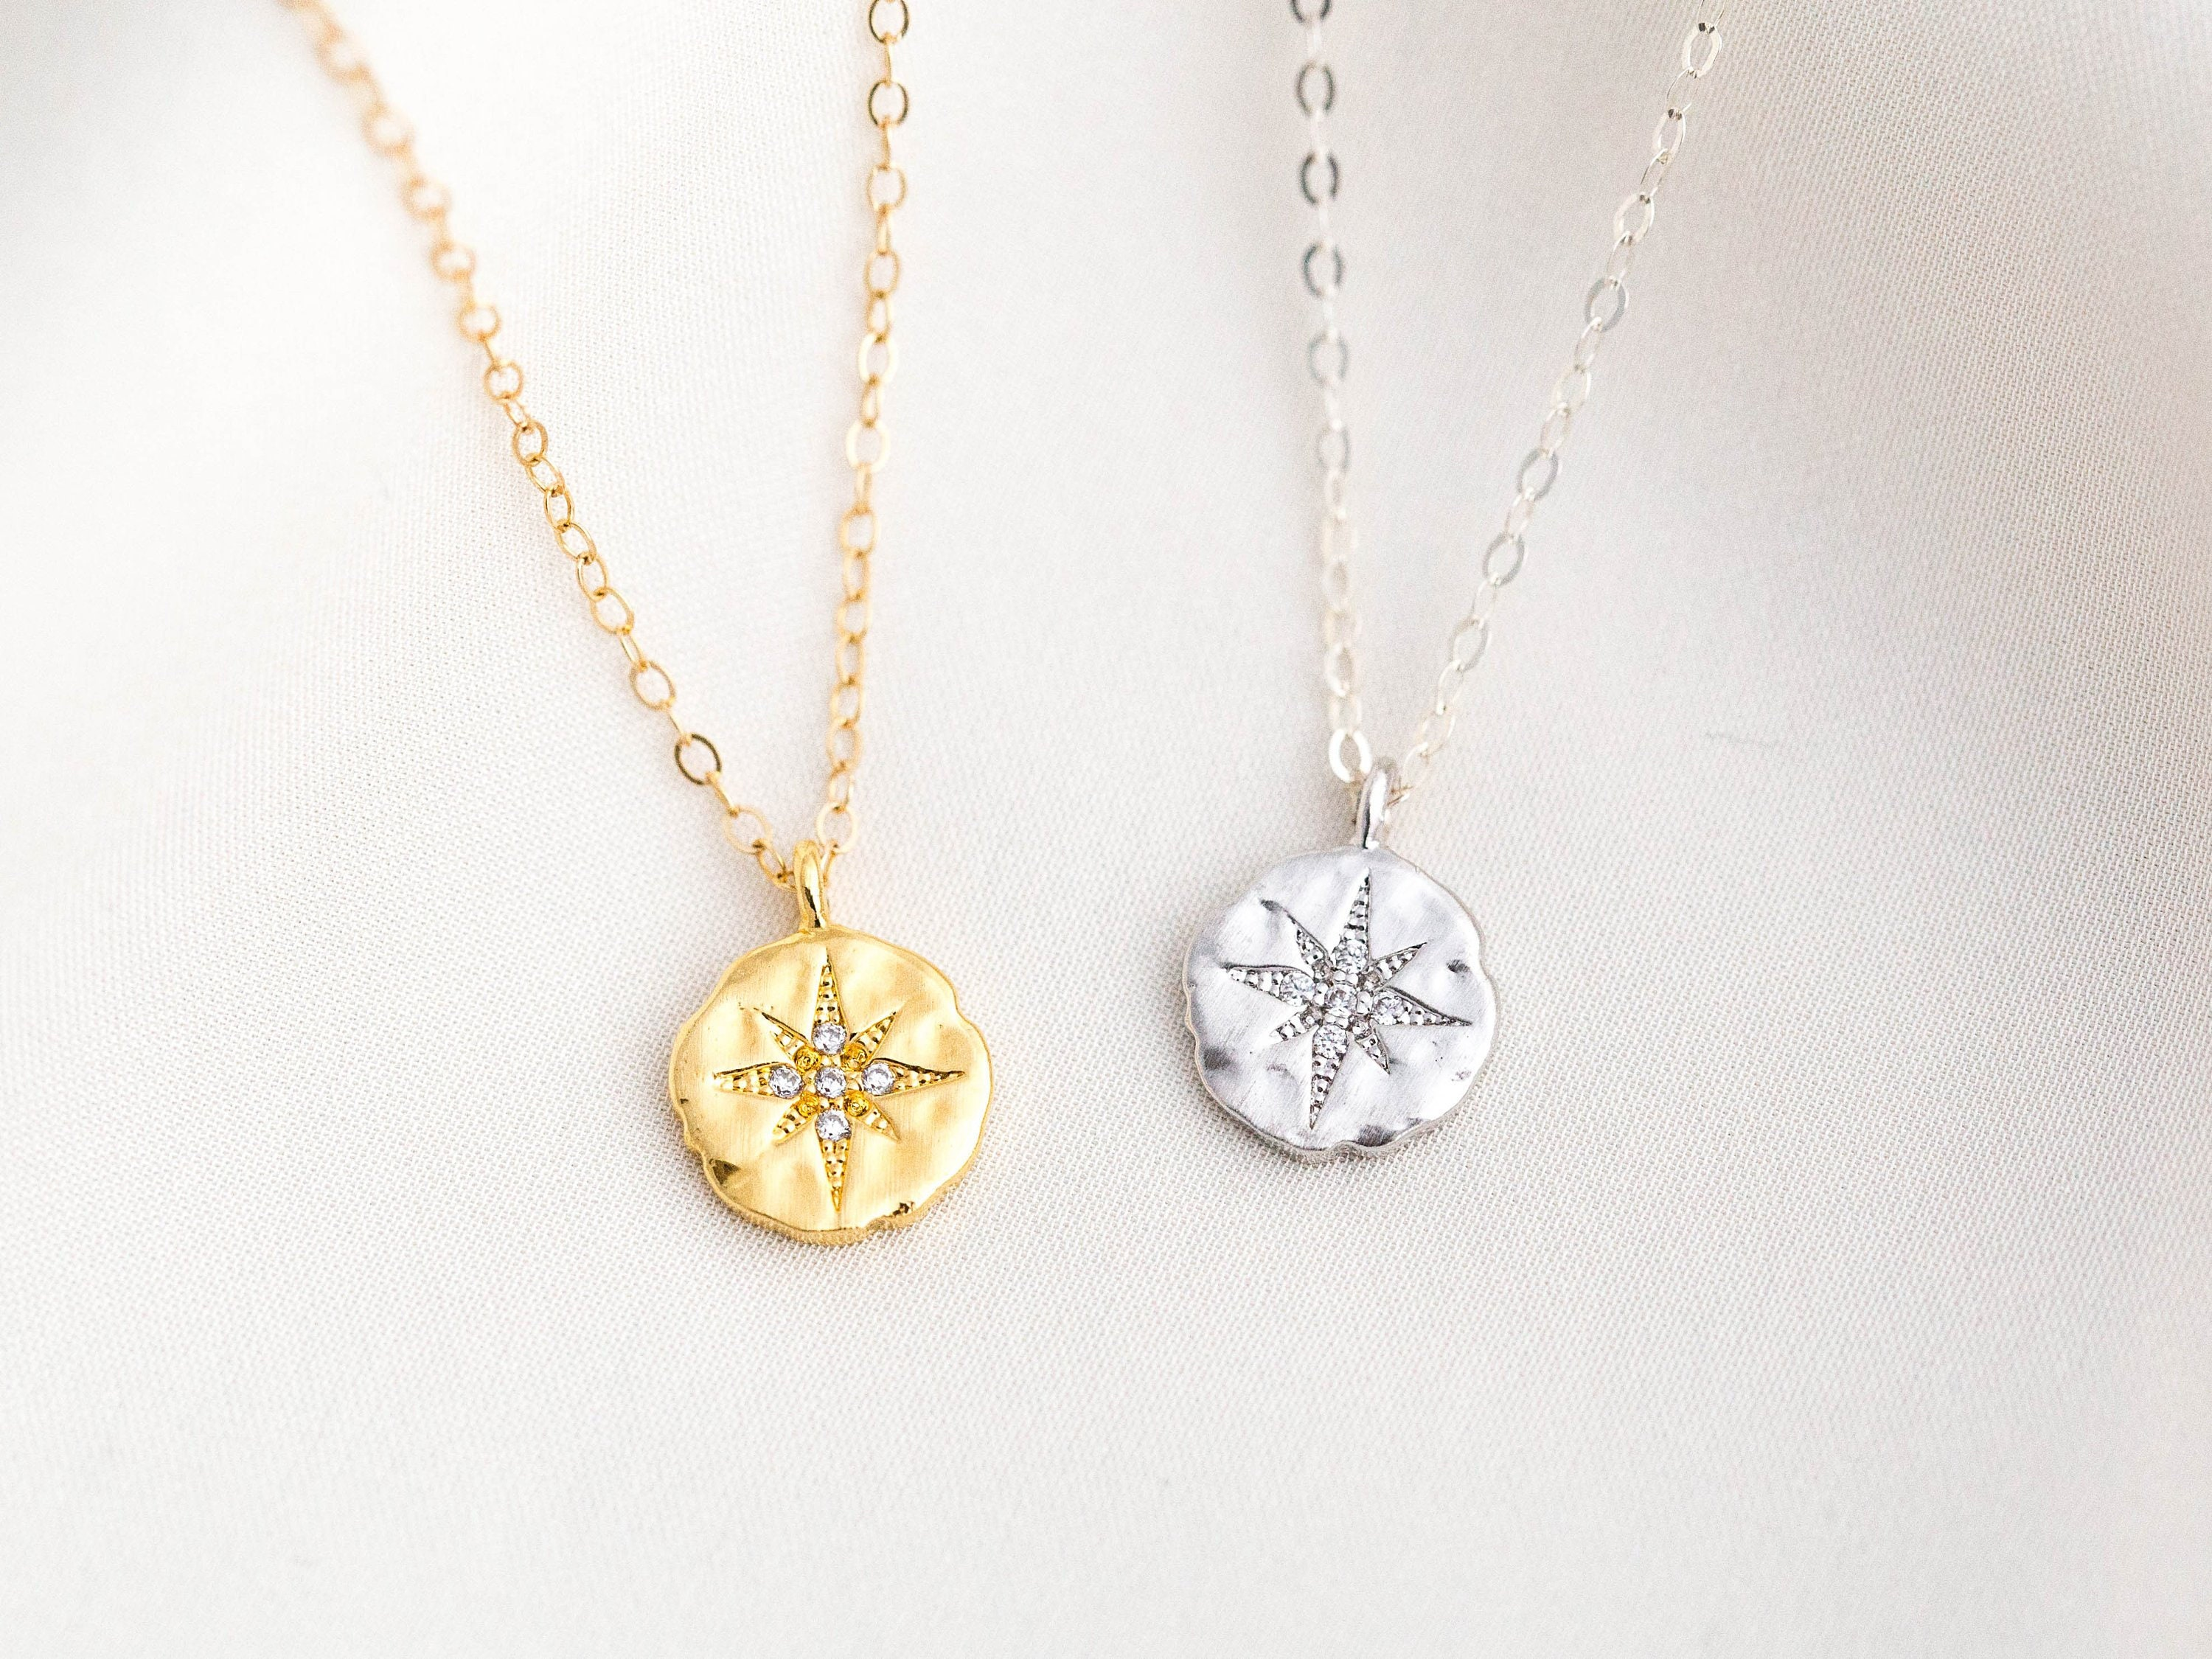 dc816733a0c4c CZ North Star Necklace / Gold Filled Polaris Necklace / Dainty Gold Coin  Necklace / Constellation Necklace / Graduation Gift / Gift for Her